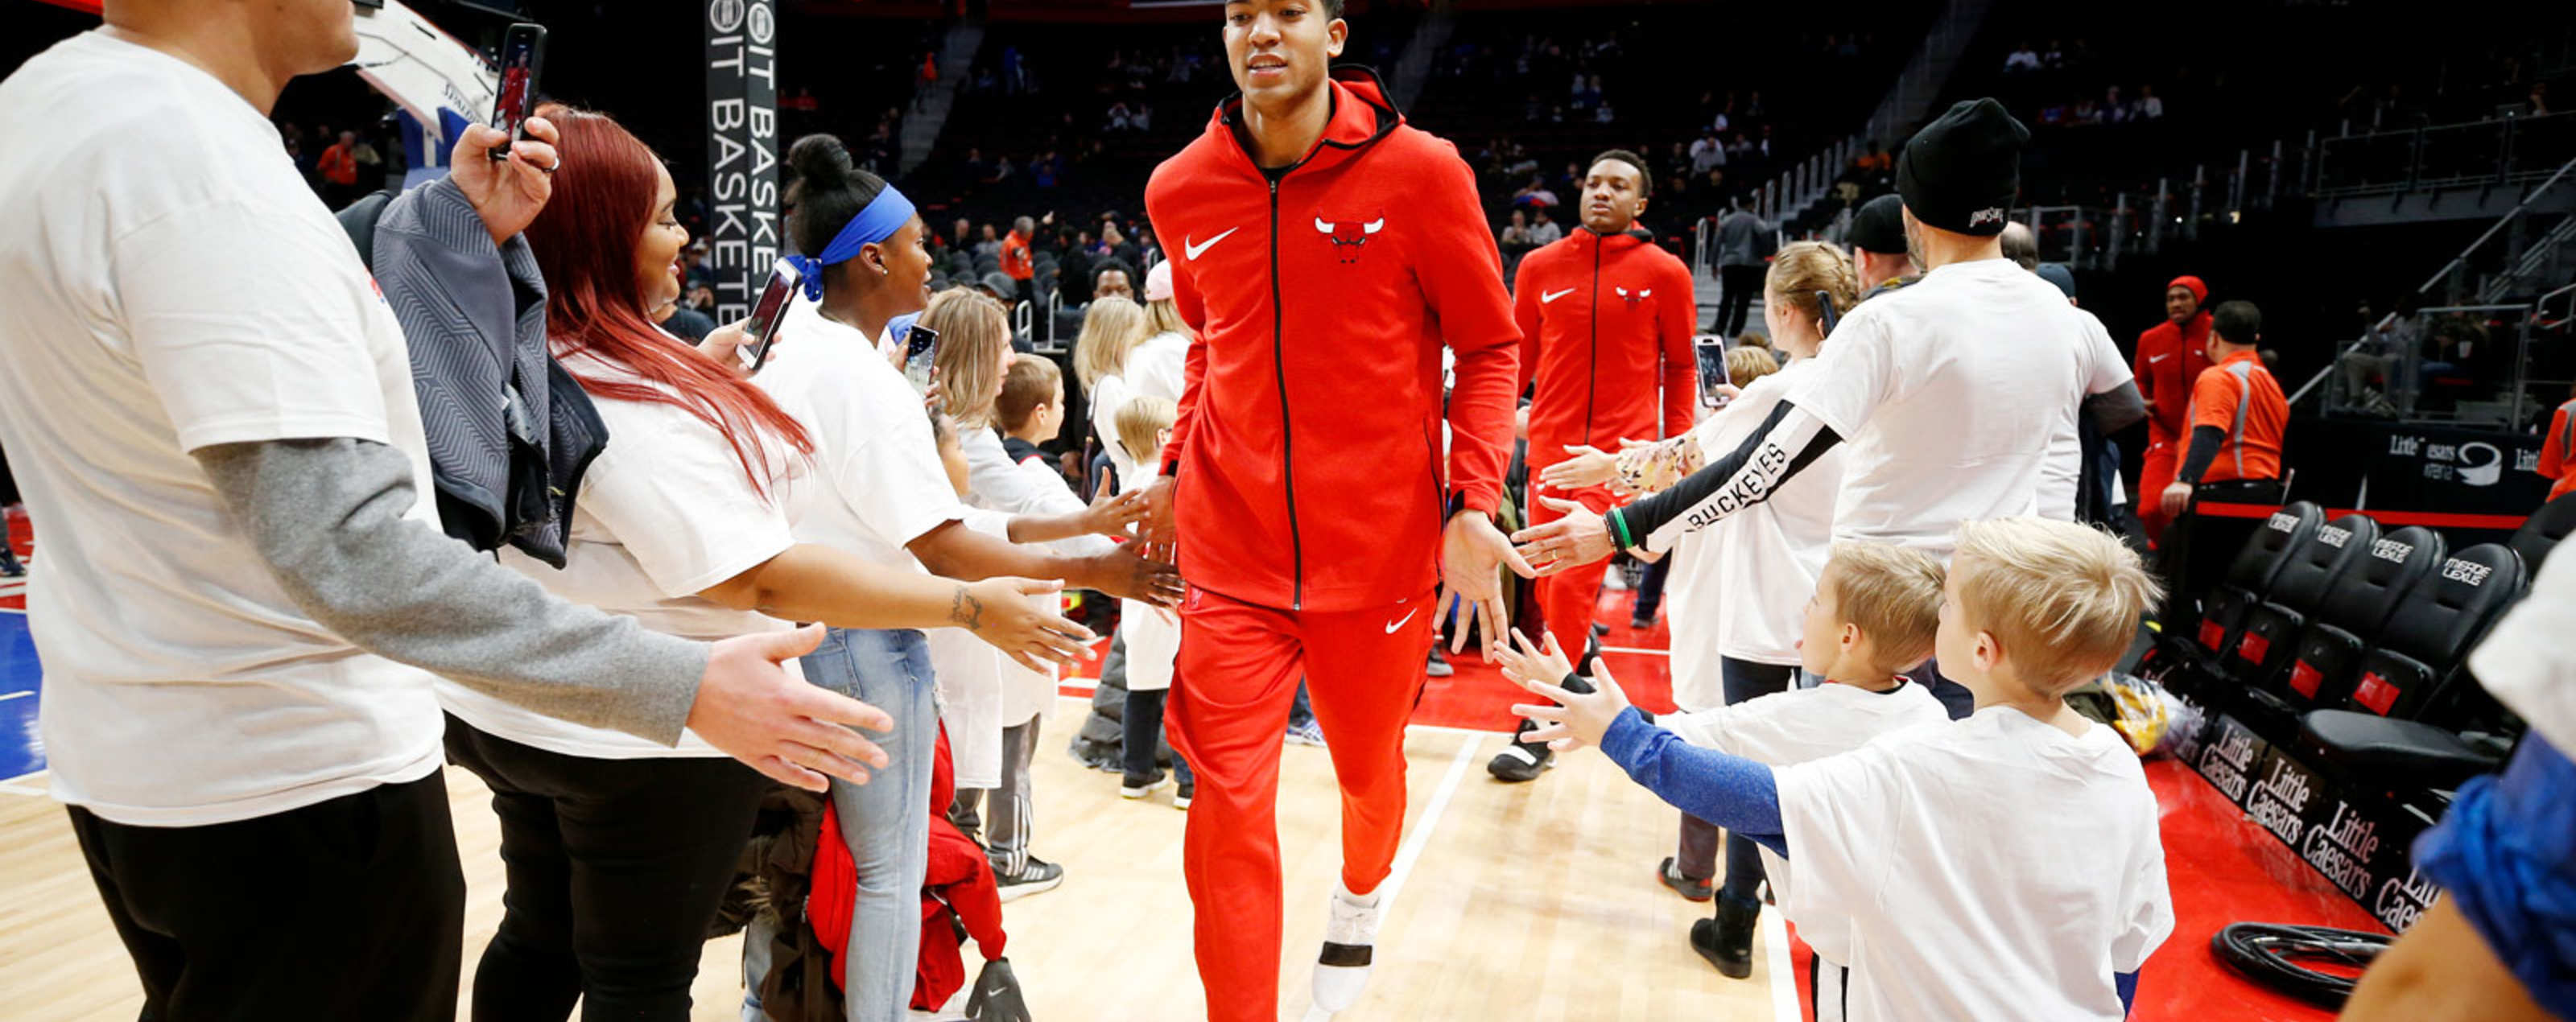 Chandler Hutchison #15 of the Chicago Bulls takes the floor for the game against the Denver Nuggets on November 27, 2018 at Little Caesars Arena in Detroit, Michigan.